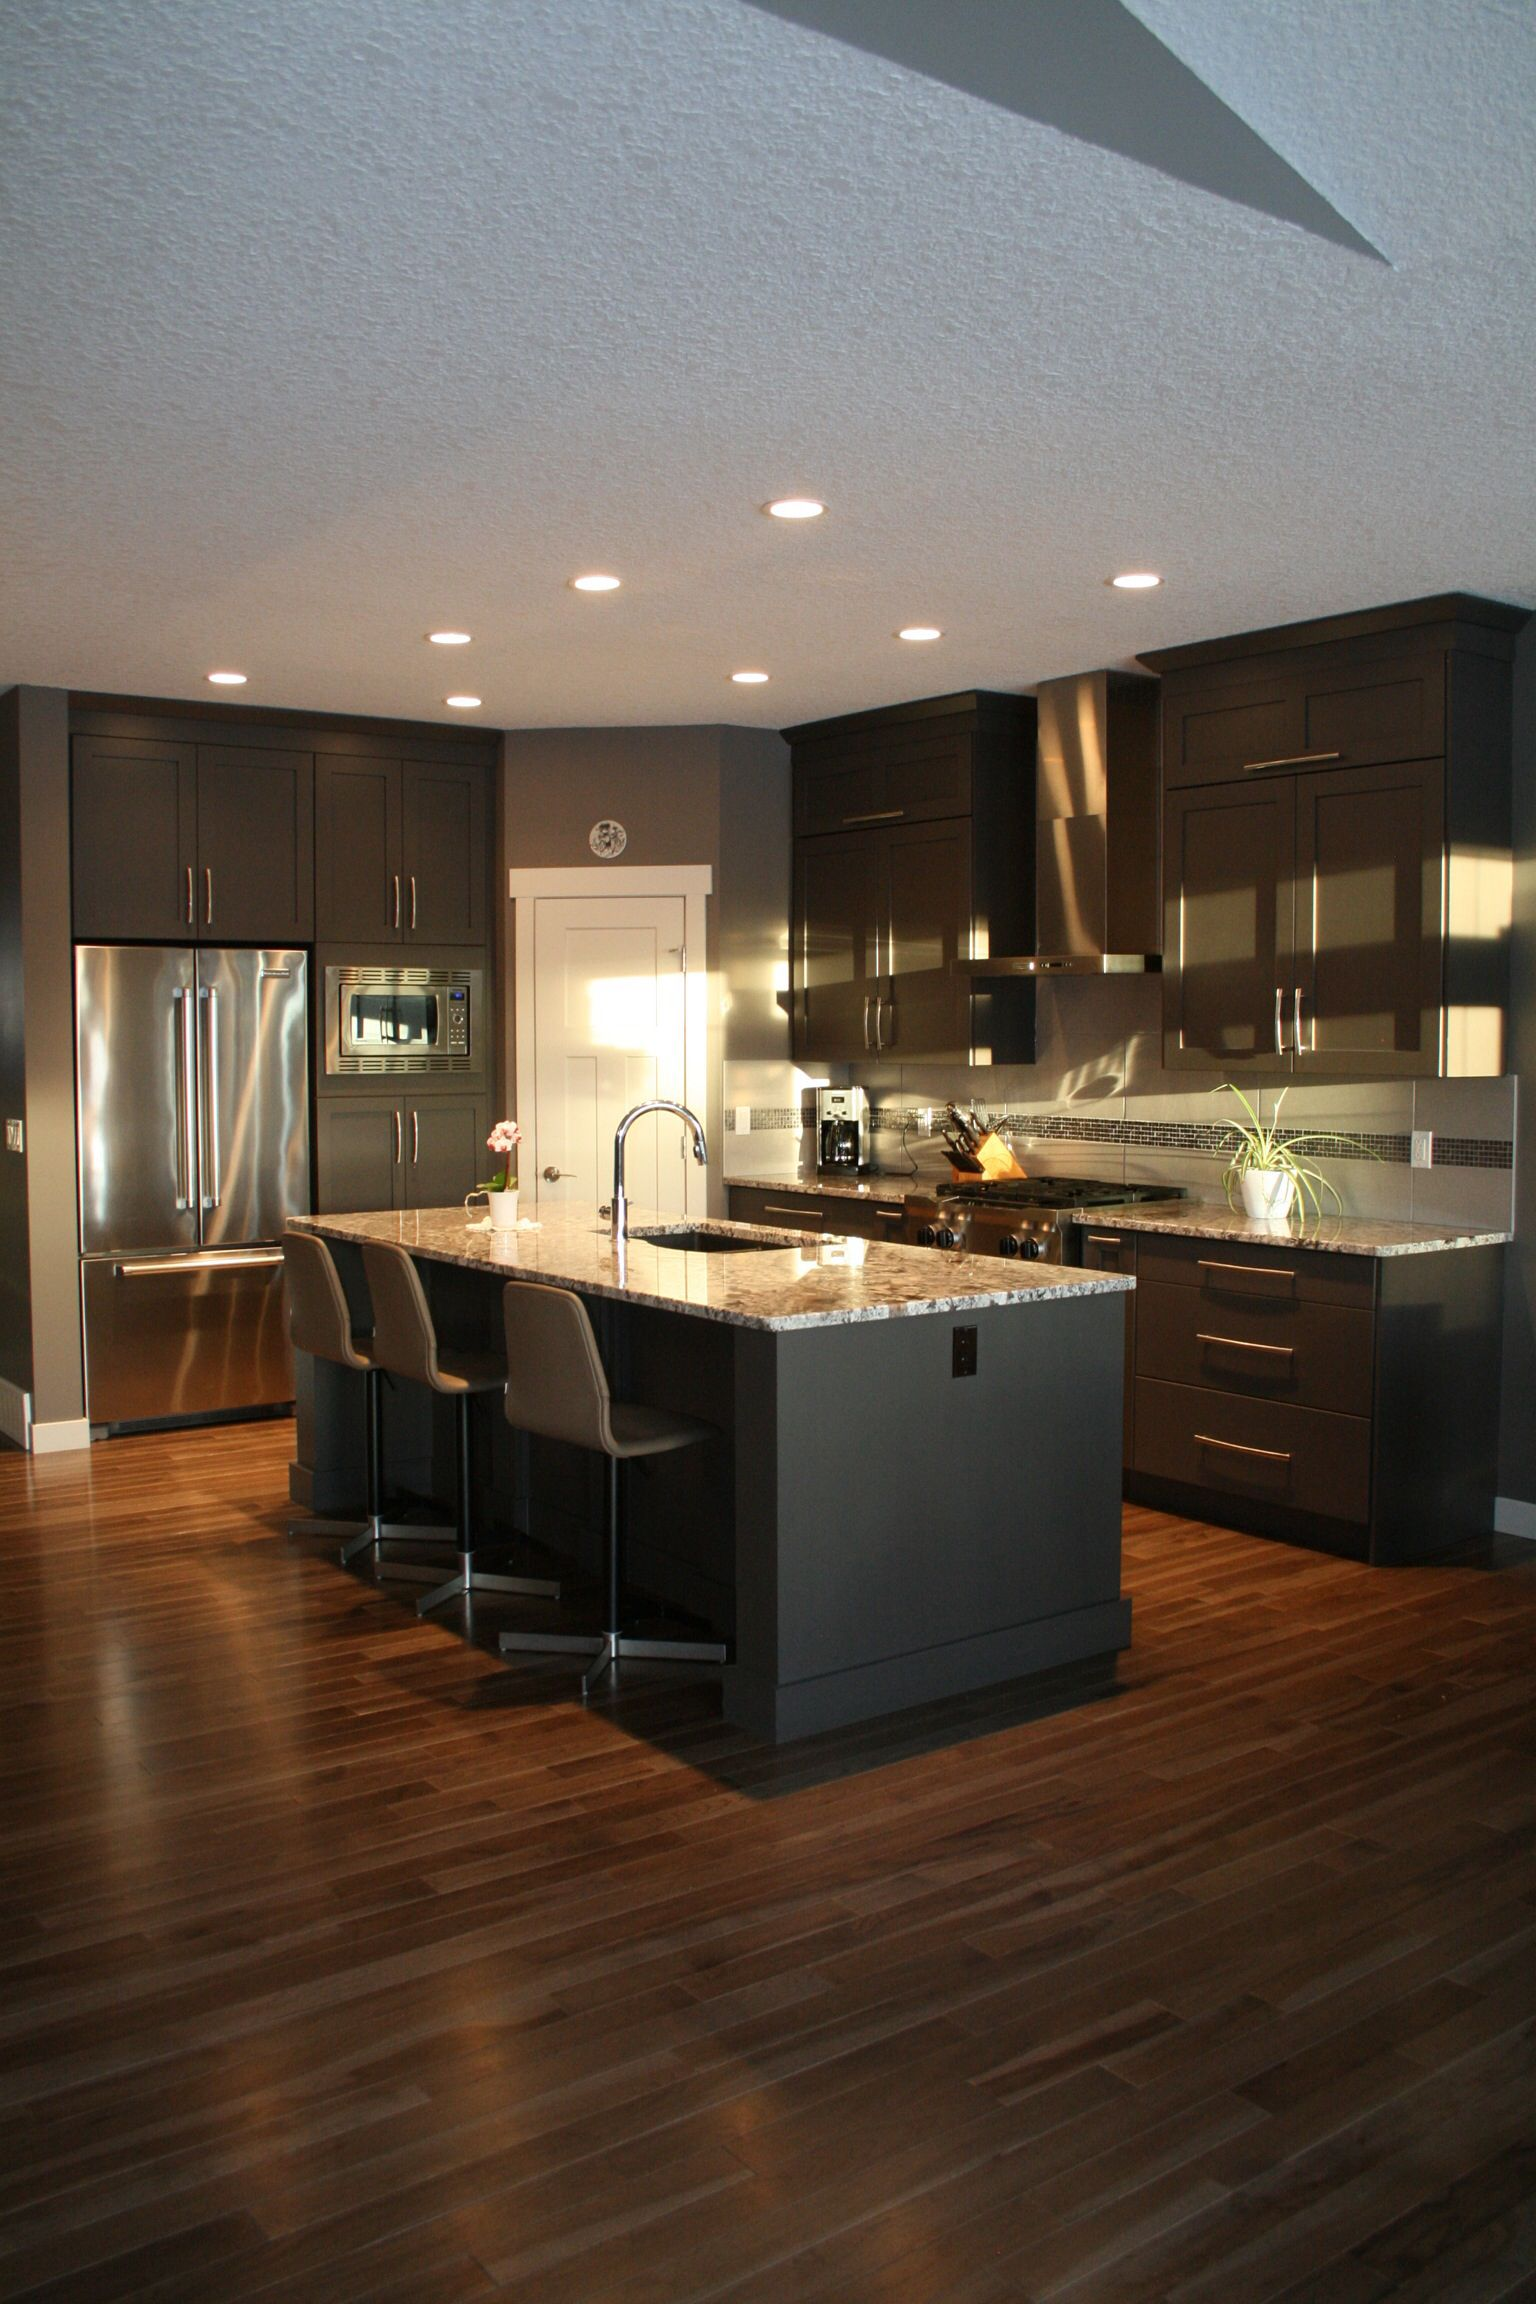 Gray kitchen cabinets - Westridge cabinets Calgary, Alberta